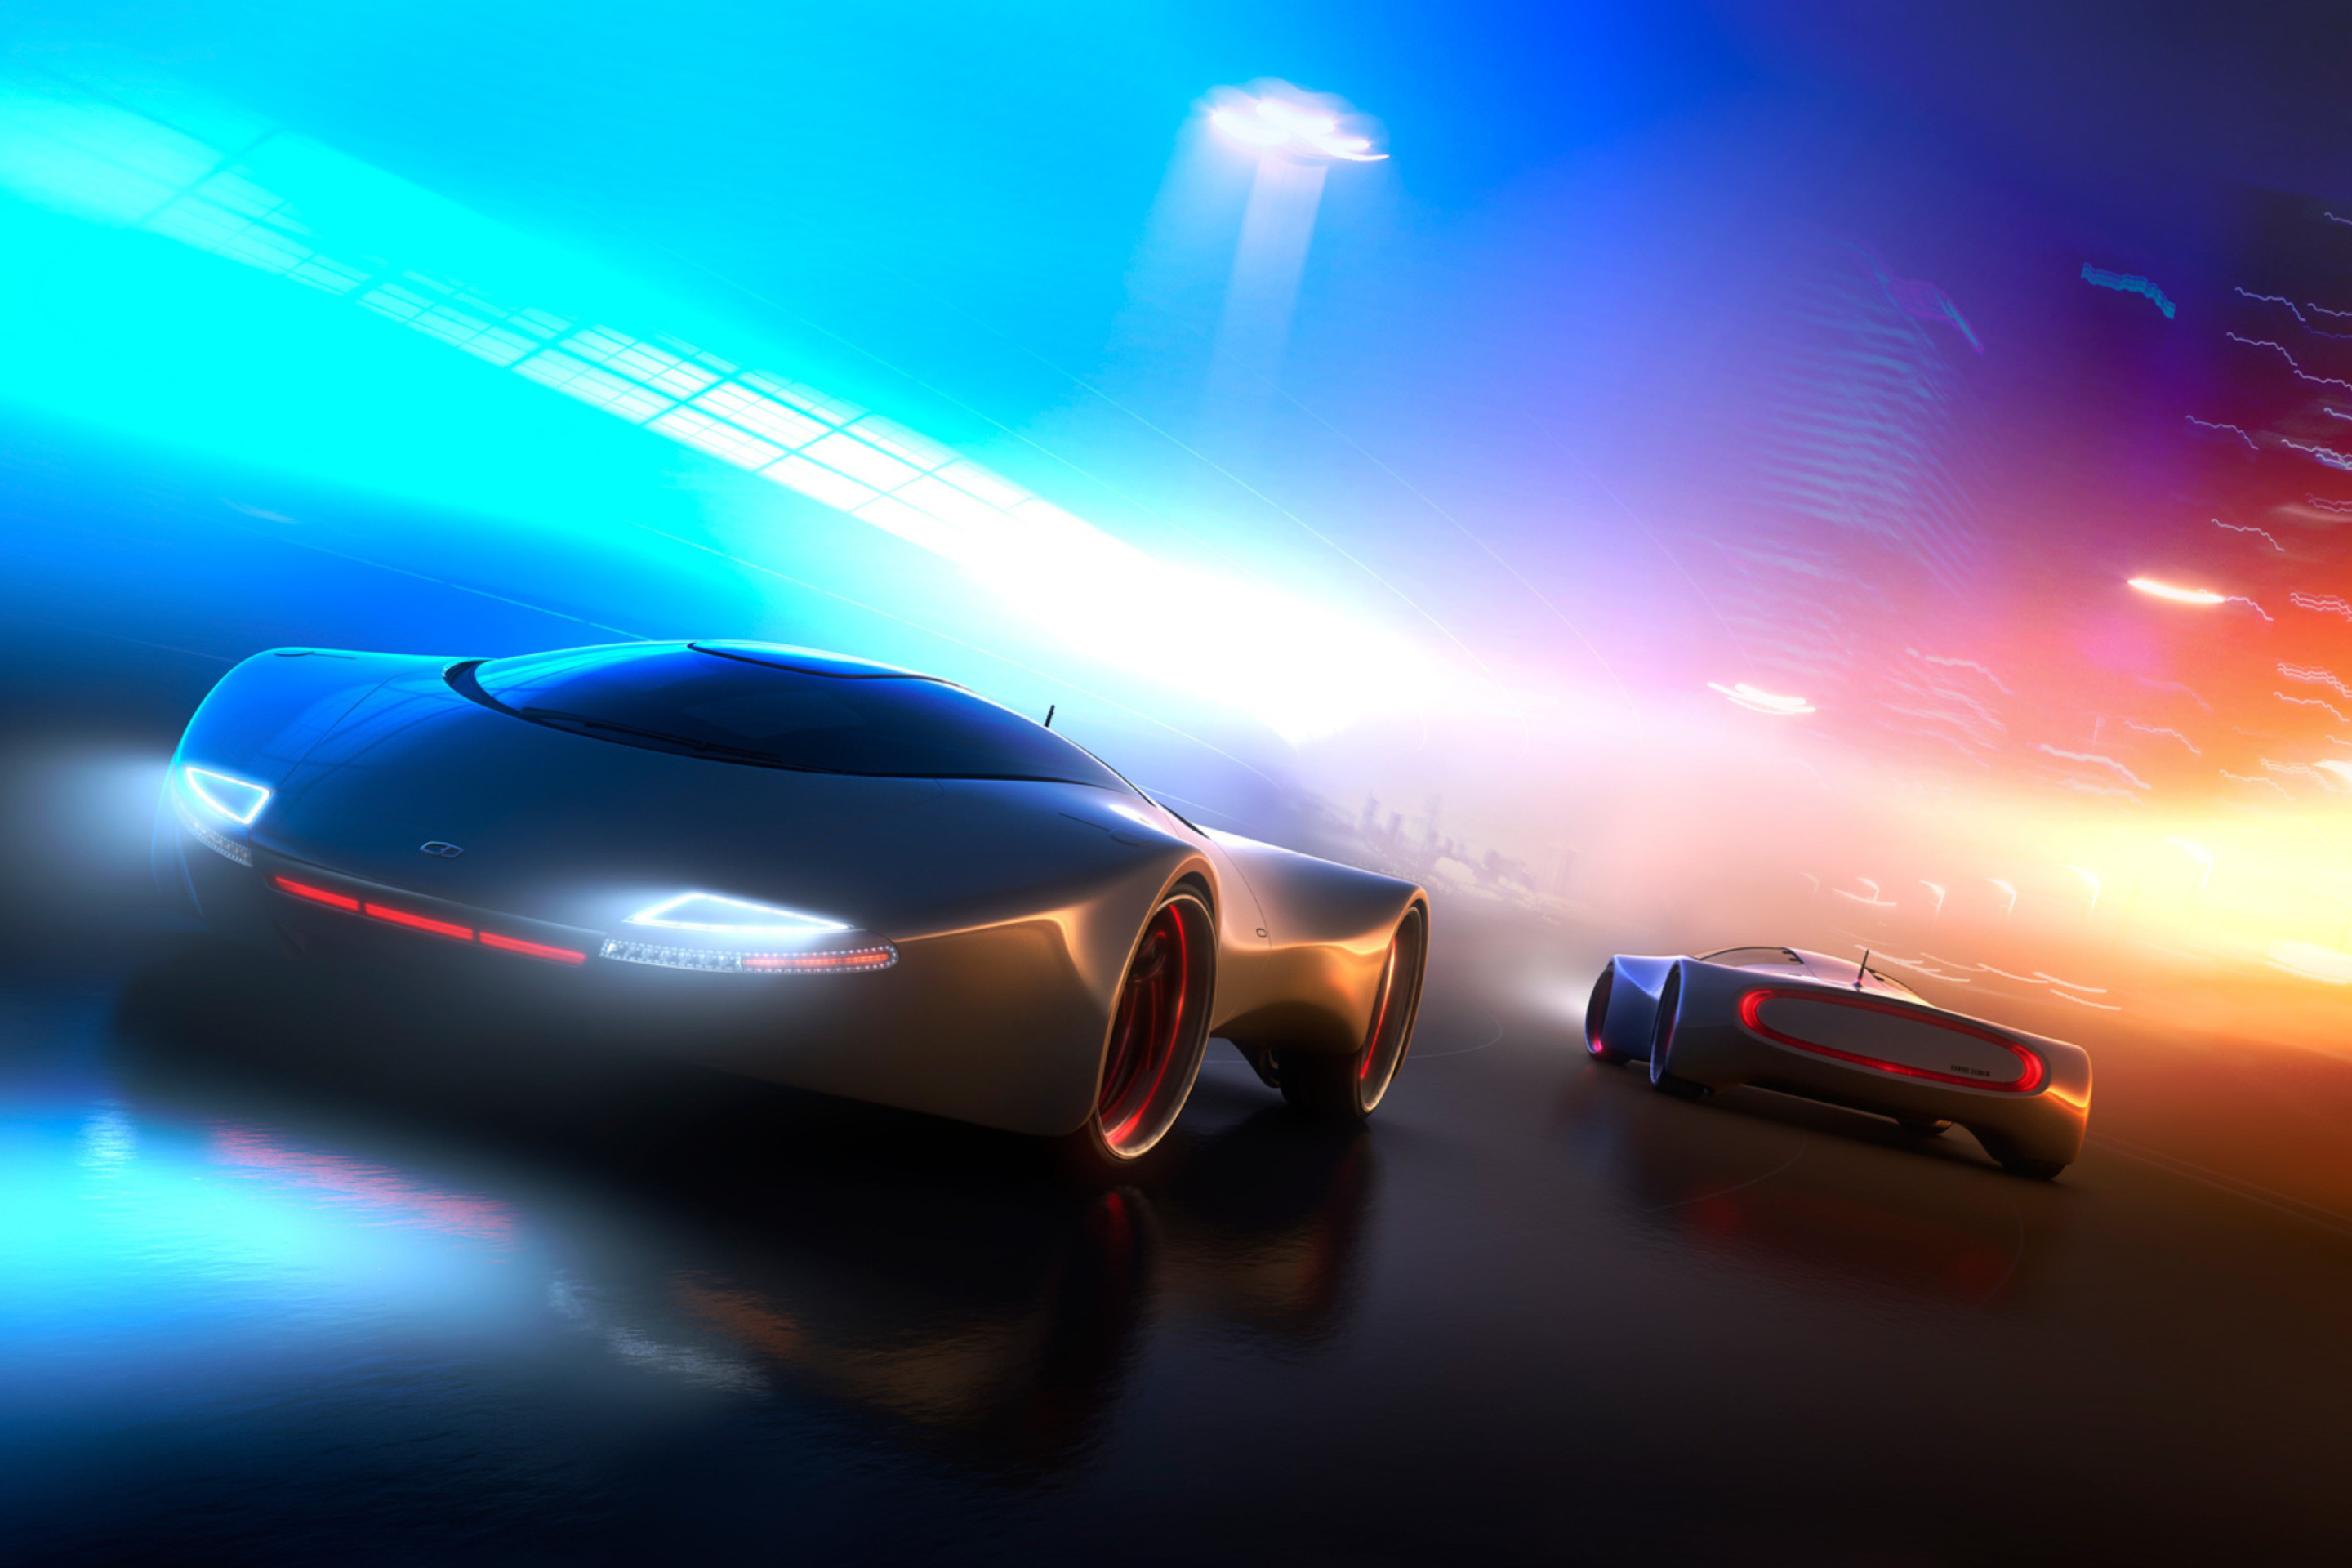 автомобили графика абстракция свет cars graphics abstraction light  № 2652809 бесплатно